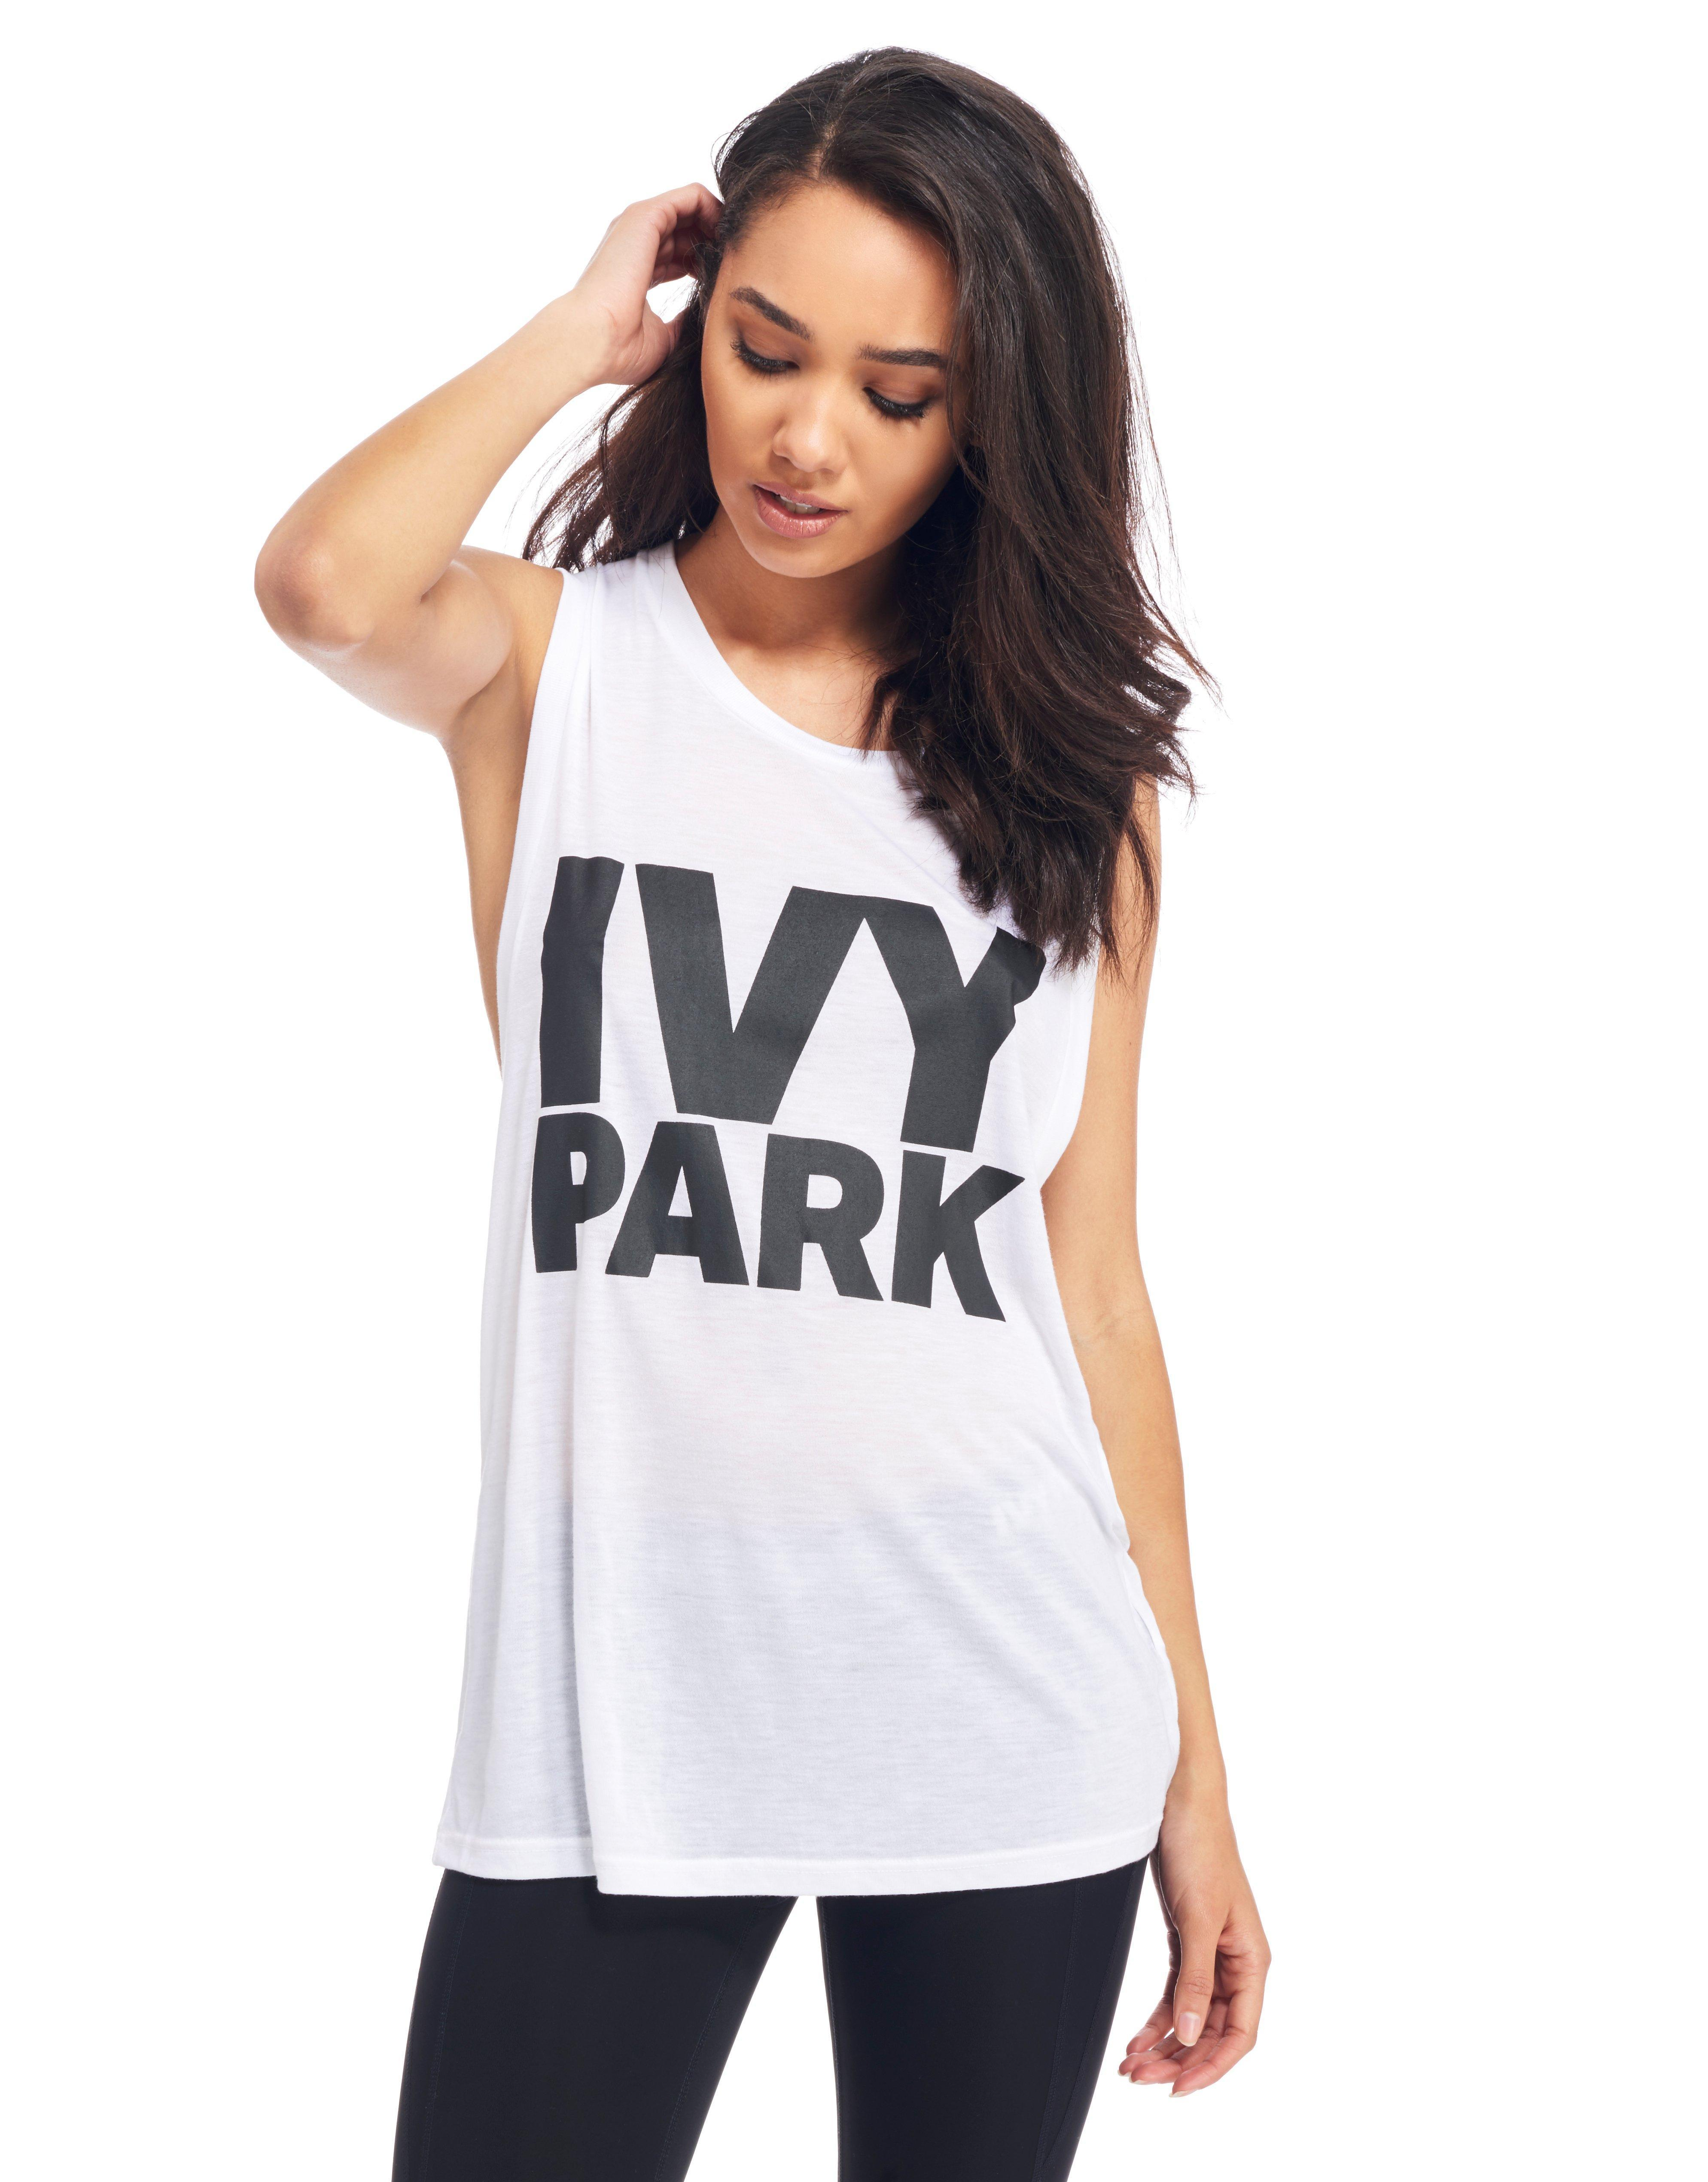 ca4b8f352cba59 Lyst - Ivy Park Muscle Tank Top in White